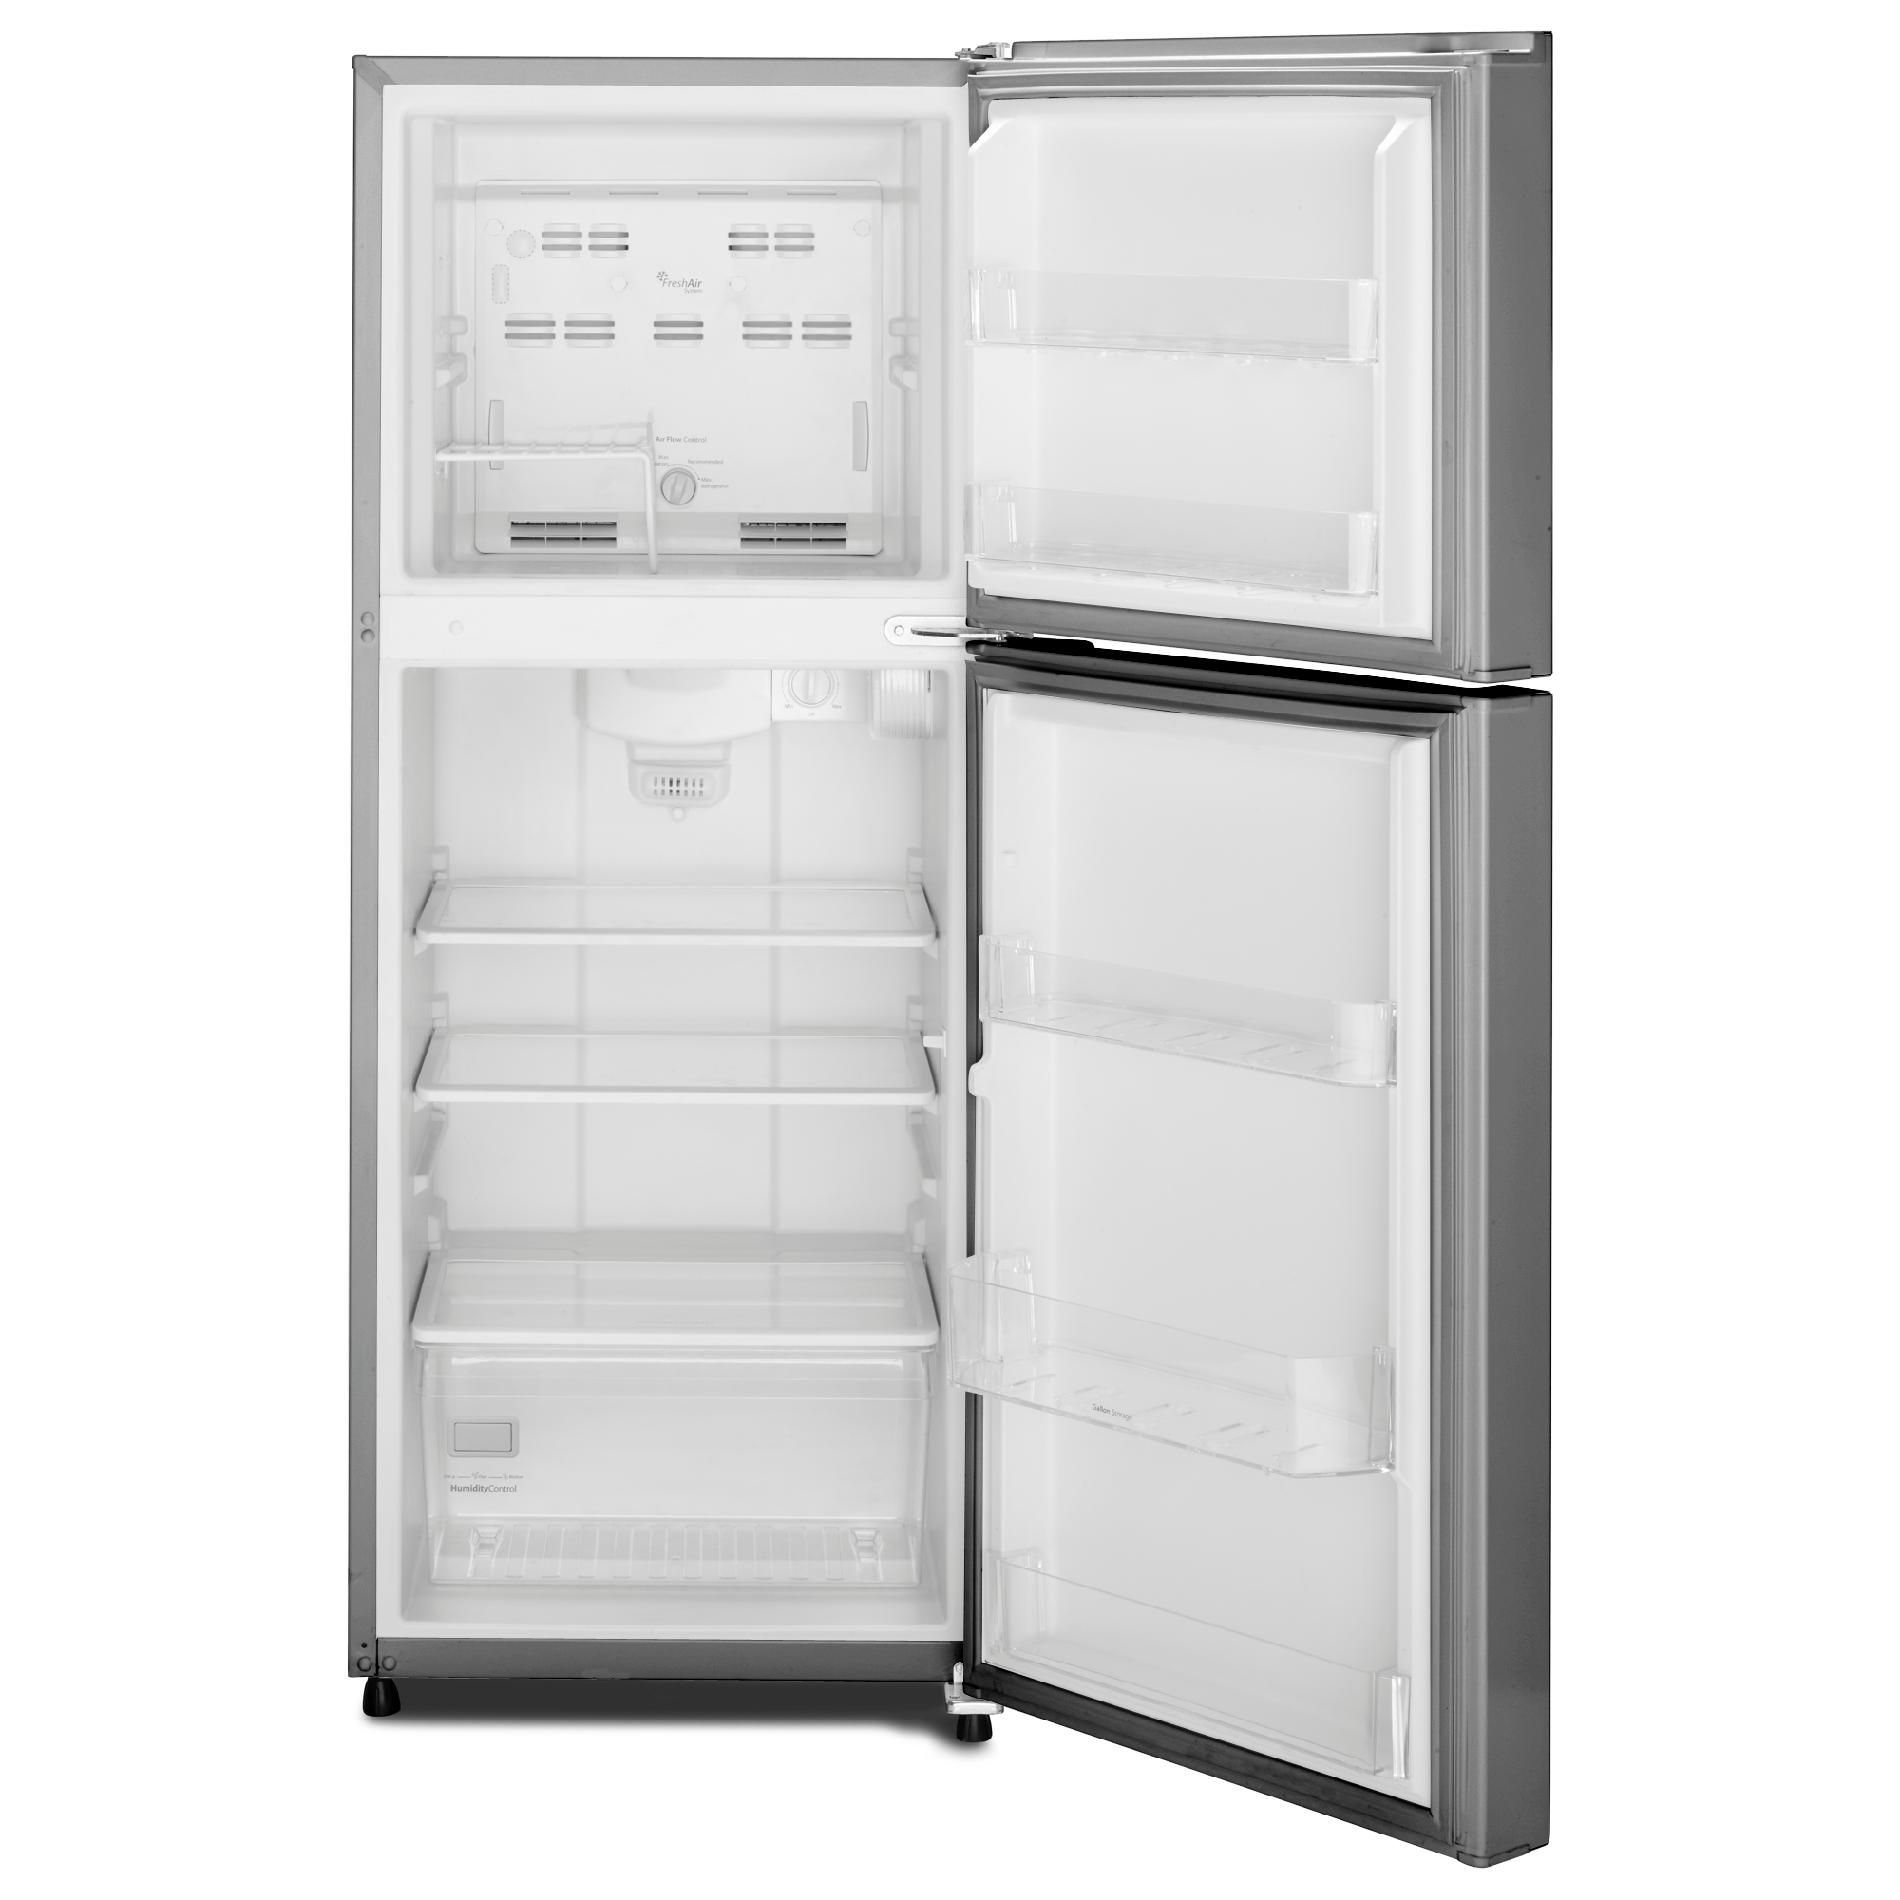 Whirlpool 10.7 cu. ft. Top-Freezer Refrigerator w/ Gallon Door Bin - Mono Satina Steel